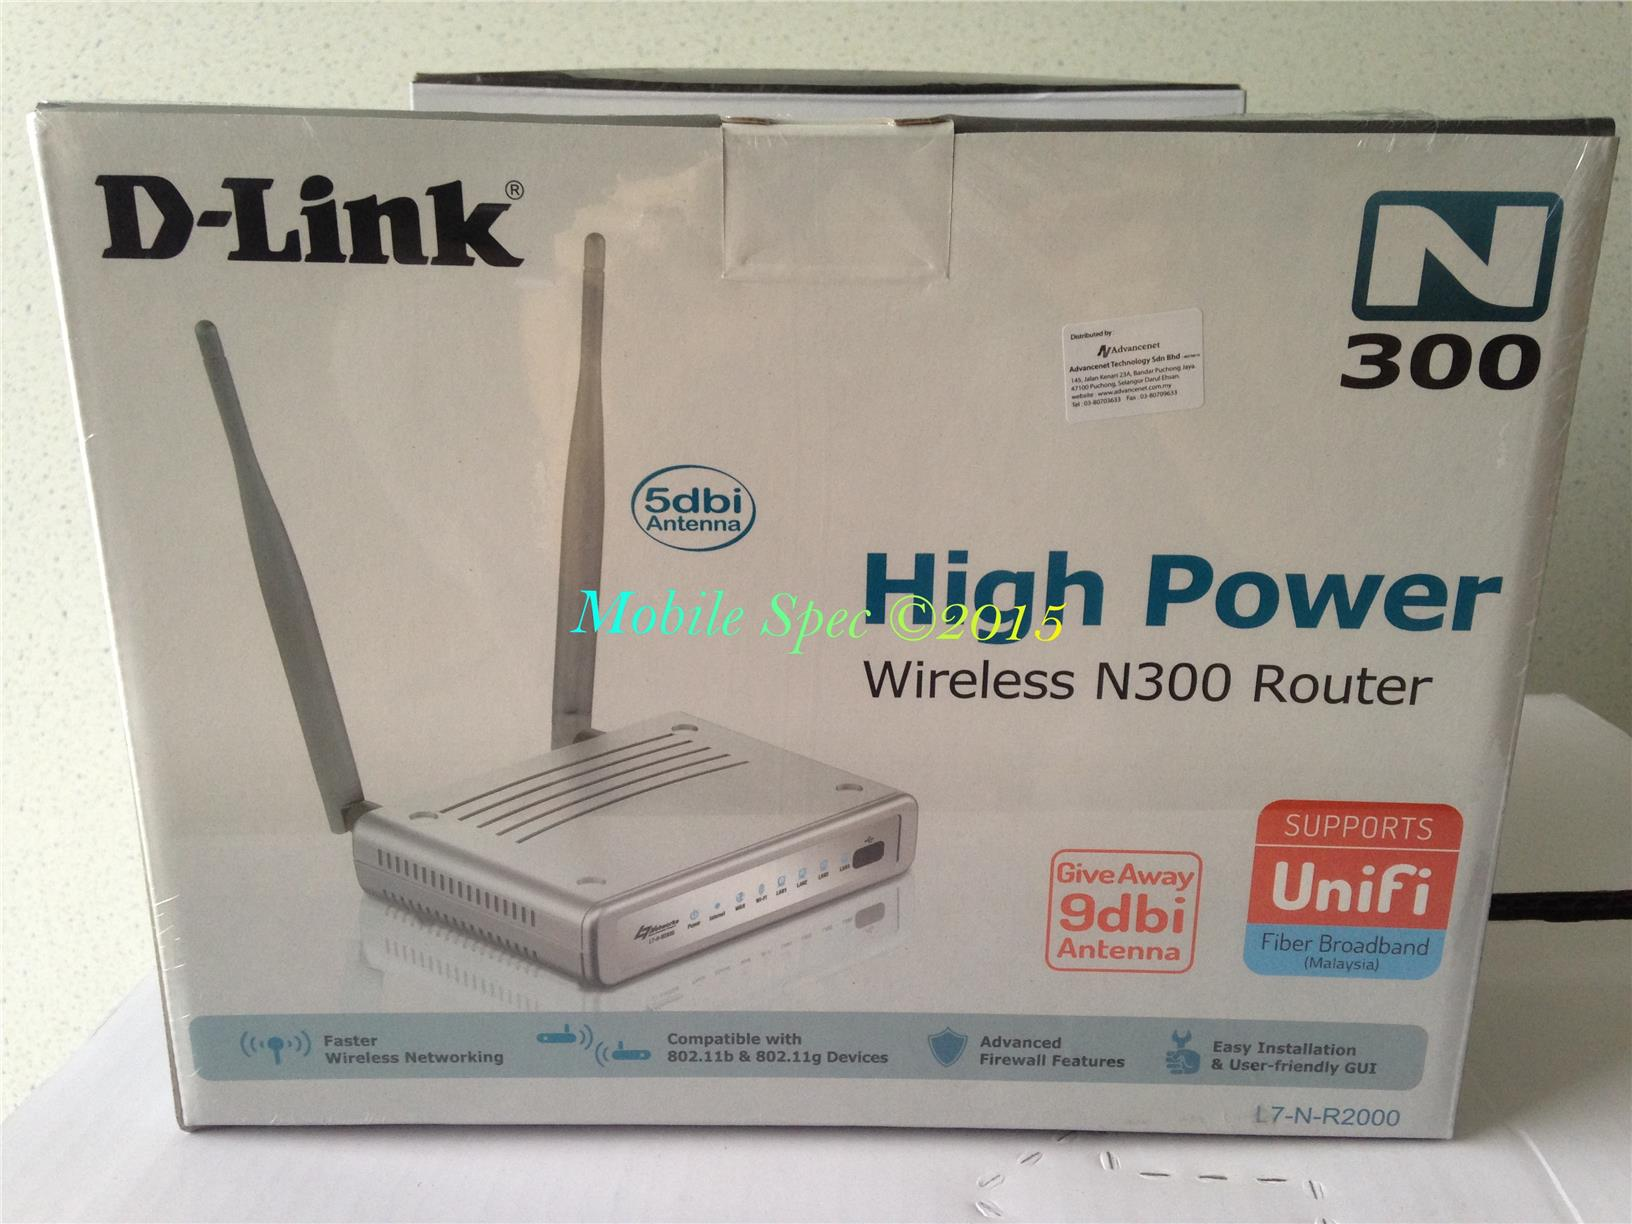 D-LINK D-L7-N-R2000 WiFi Wireless High Gain Router UniFi 9dBi Antenna